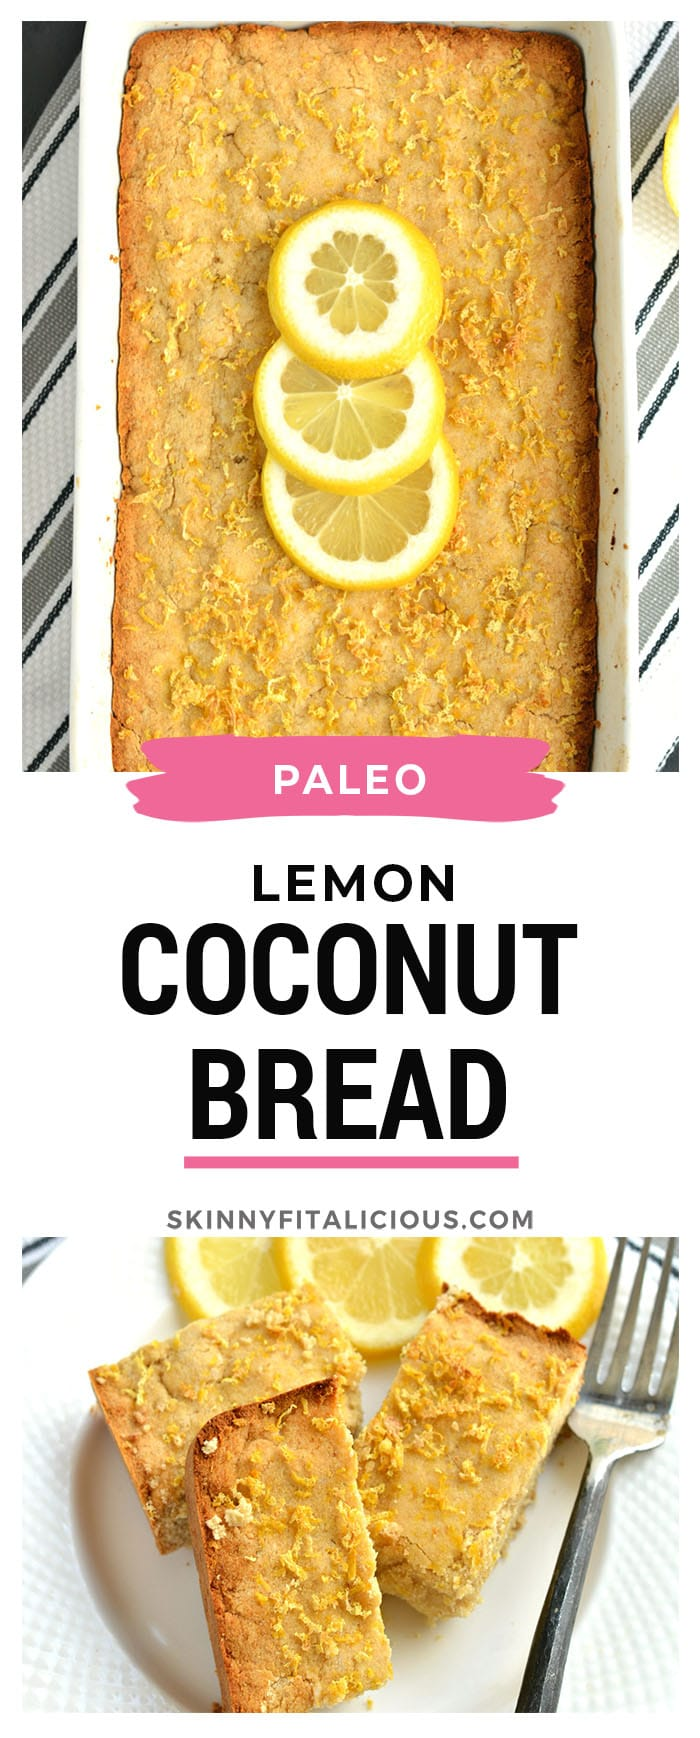 A luscious Paleo Coconut Lemon Cake that's thick and bursting with lemon! Made with coconut flour and topped with crispy baked lemon zest, this cake makes an excellent low-carb, gluten-free, calorie friendly snack! Paleo + Gluten Free + Low Calorie